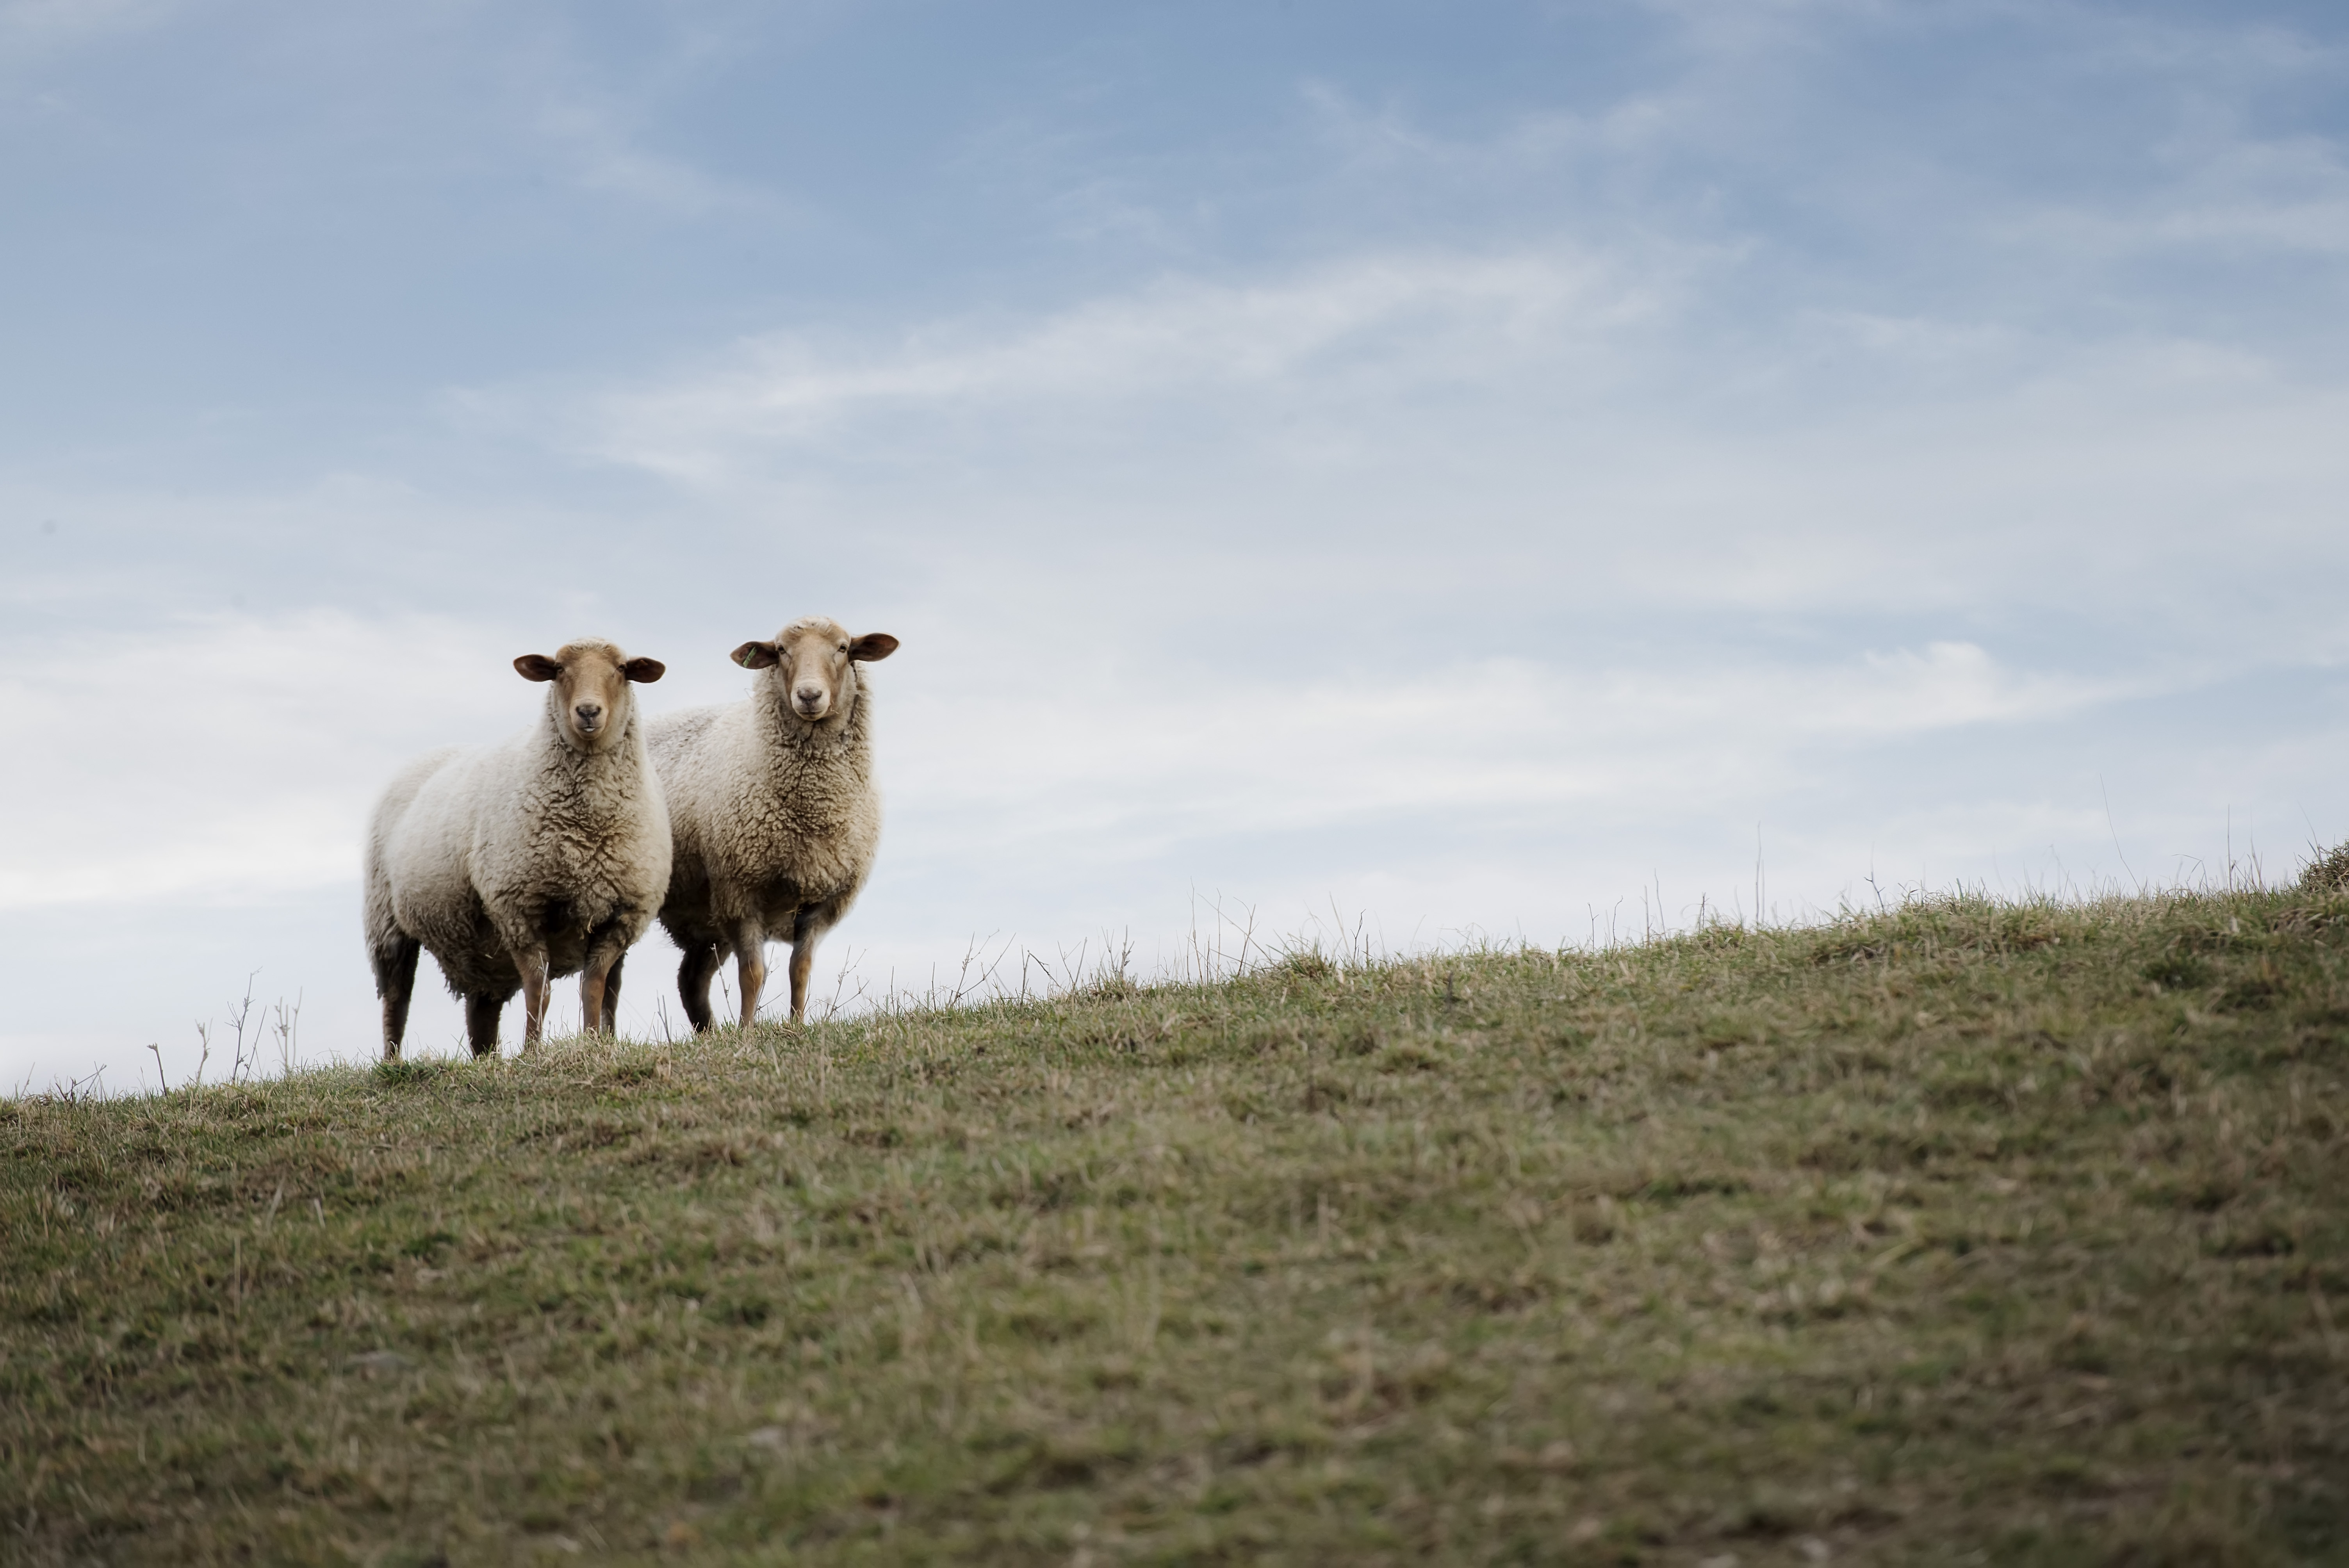 Maryland Sheep Breeders Association - Member public profile